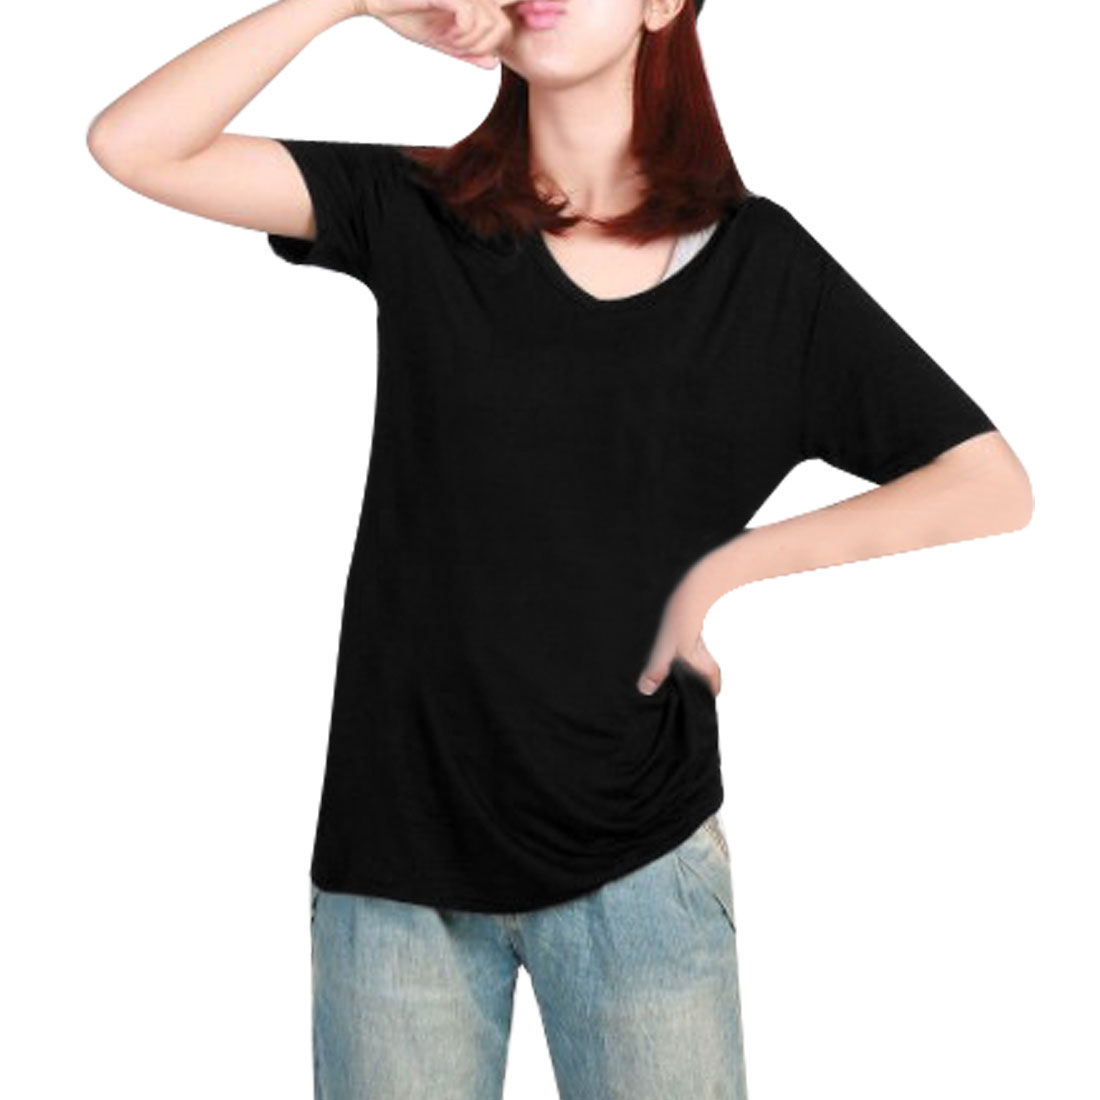 Patch Pocket Black Candy Color T-Shirt Blouse XS for Women